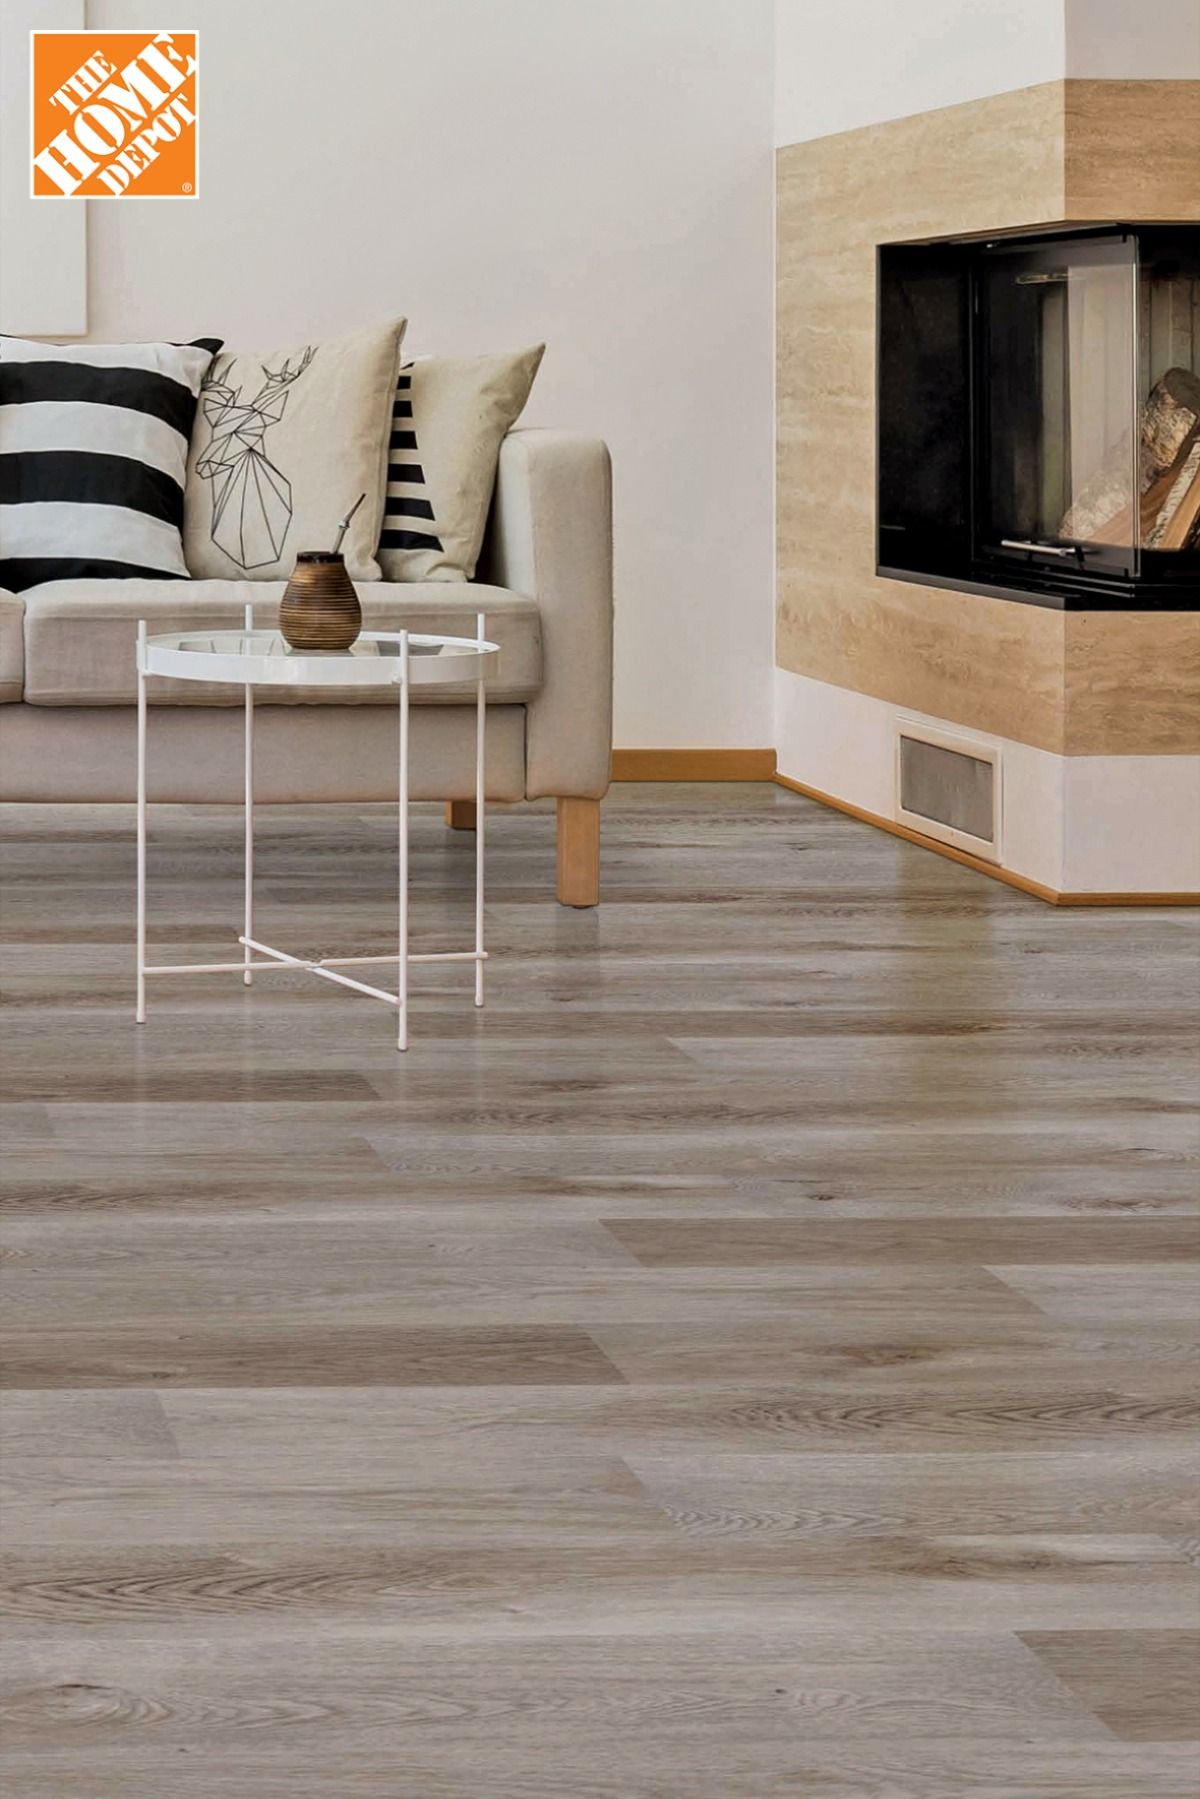 The Home Depot has the perfect vinyl flooring for your